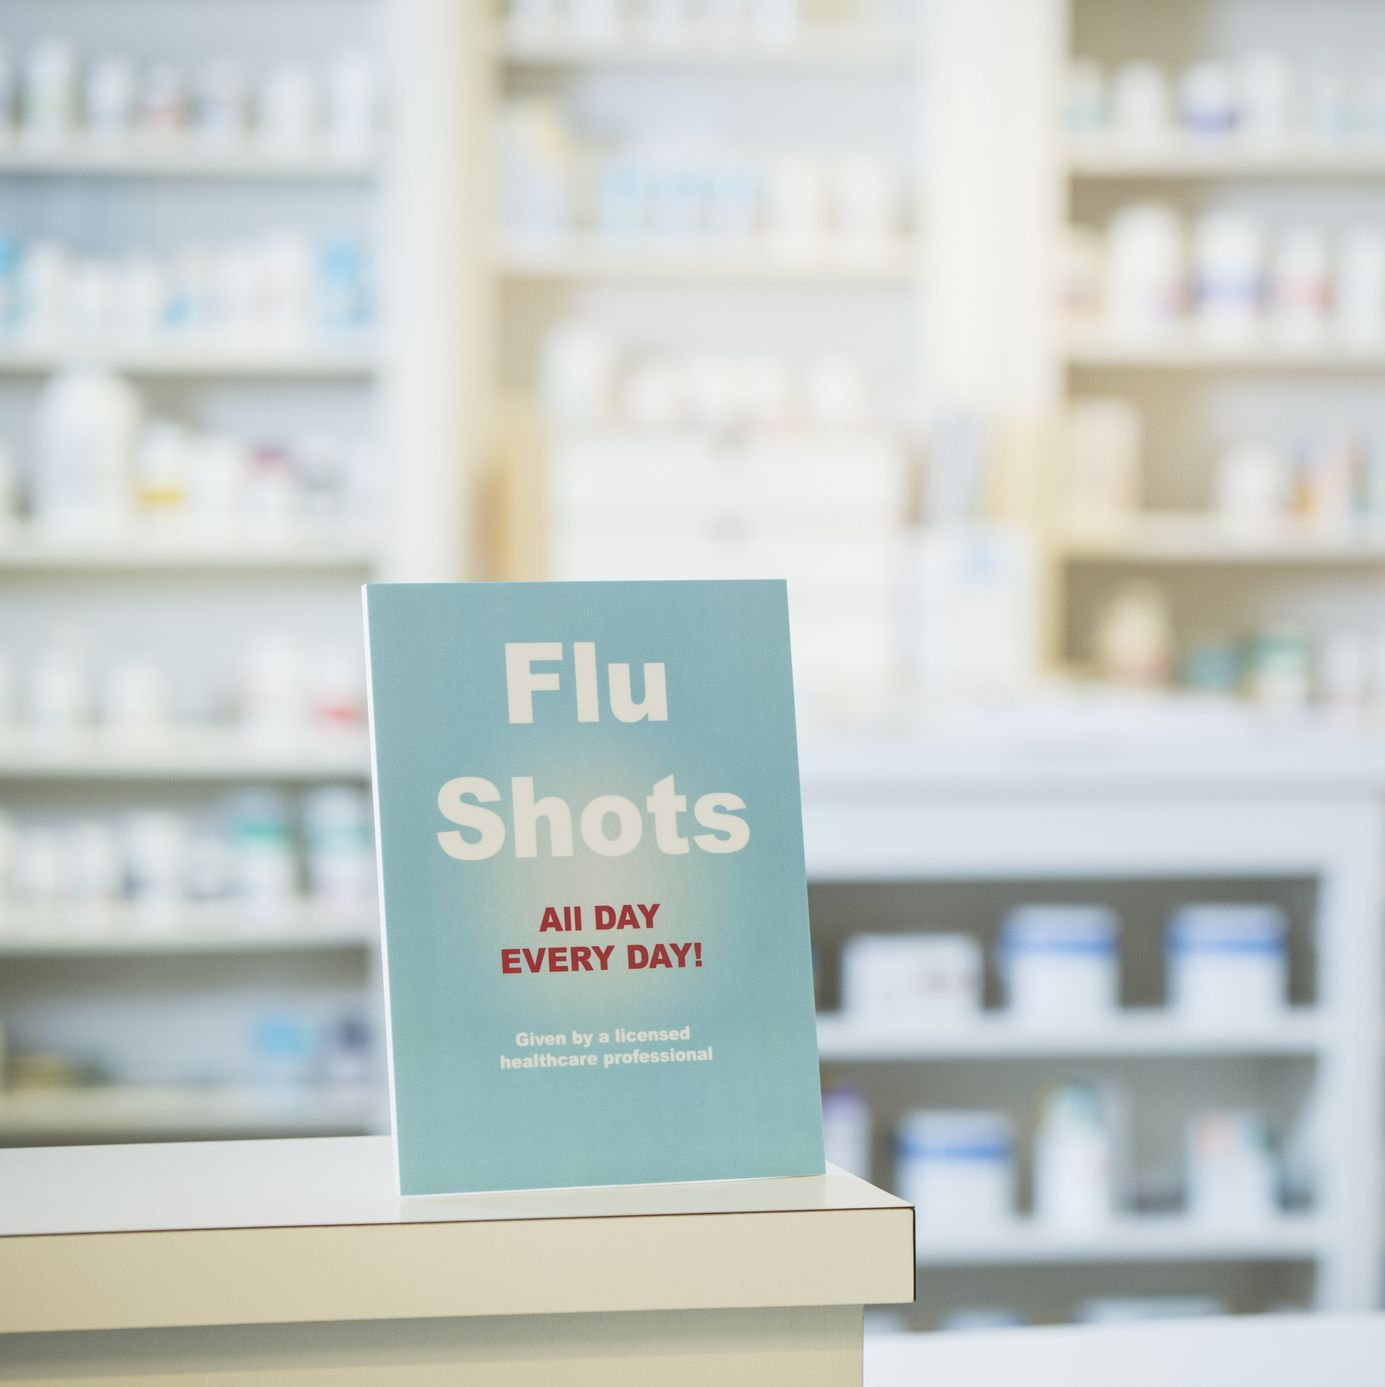 Get Your Flu Shot When you're young and lazy, you might risk not getting a shot—but once you hit 30, you have no excuse. Don't just get it for your own sake, either—if you get the flu, you can't spread it to anyone else.